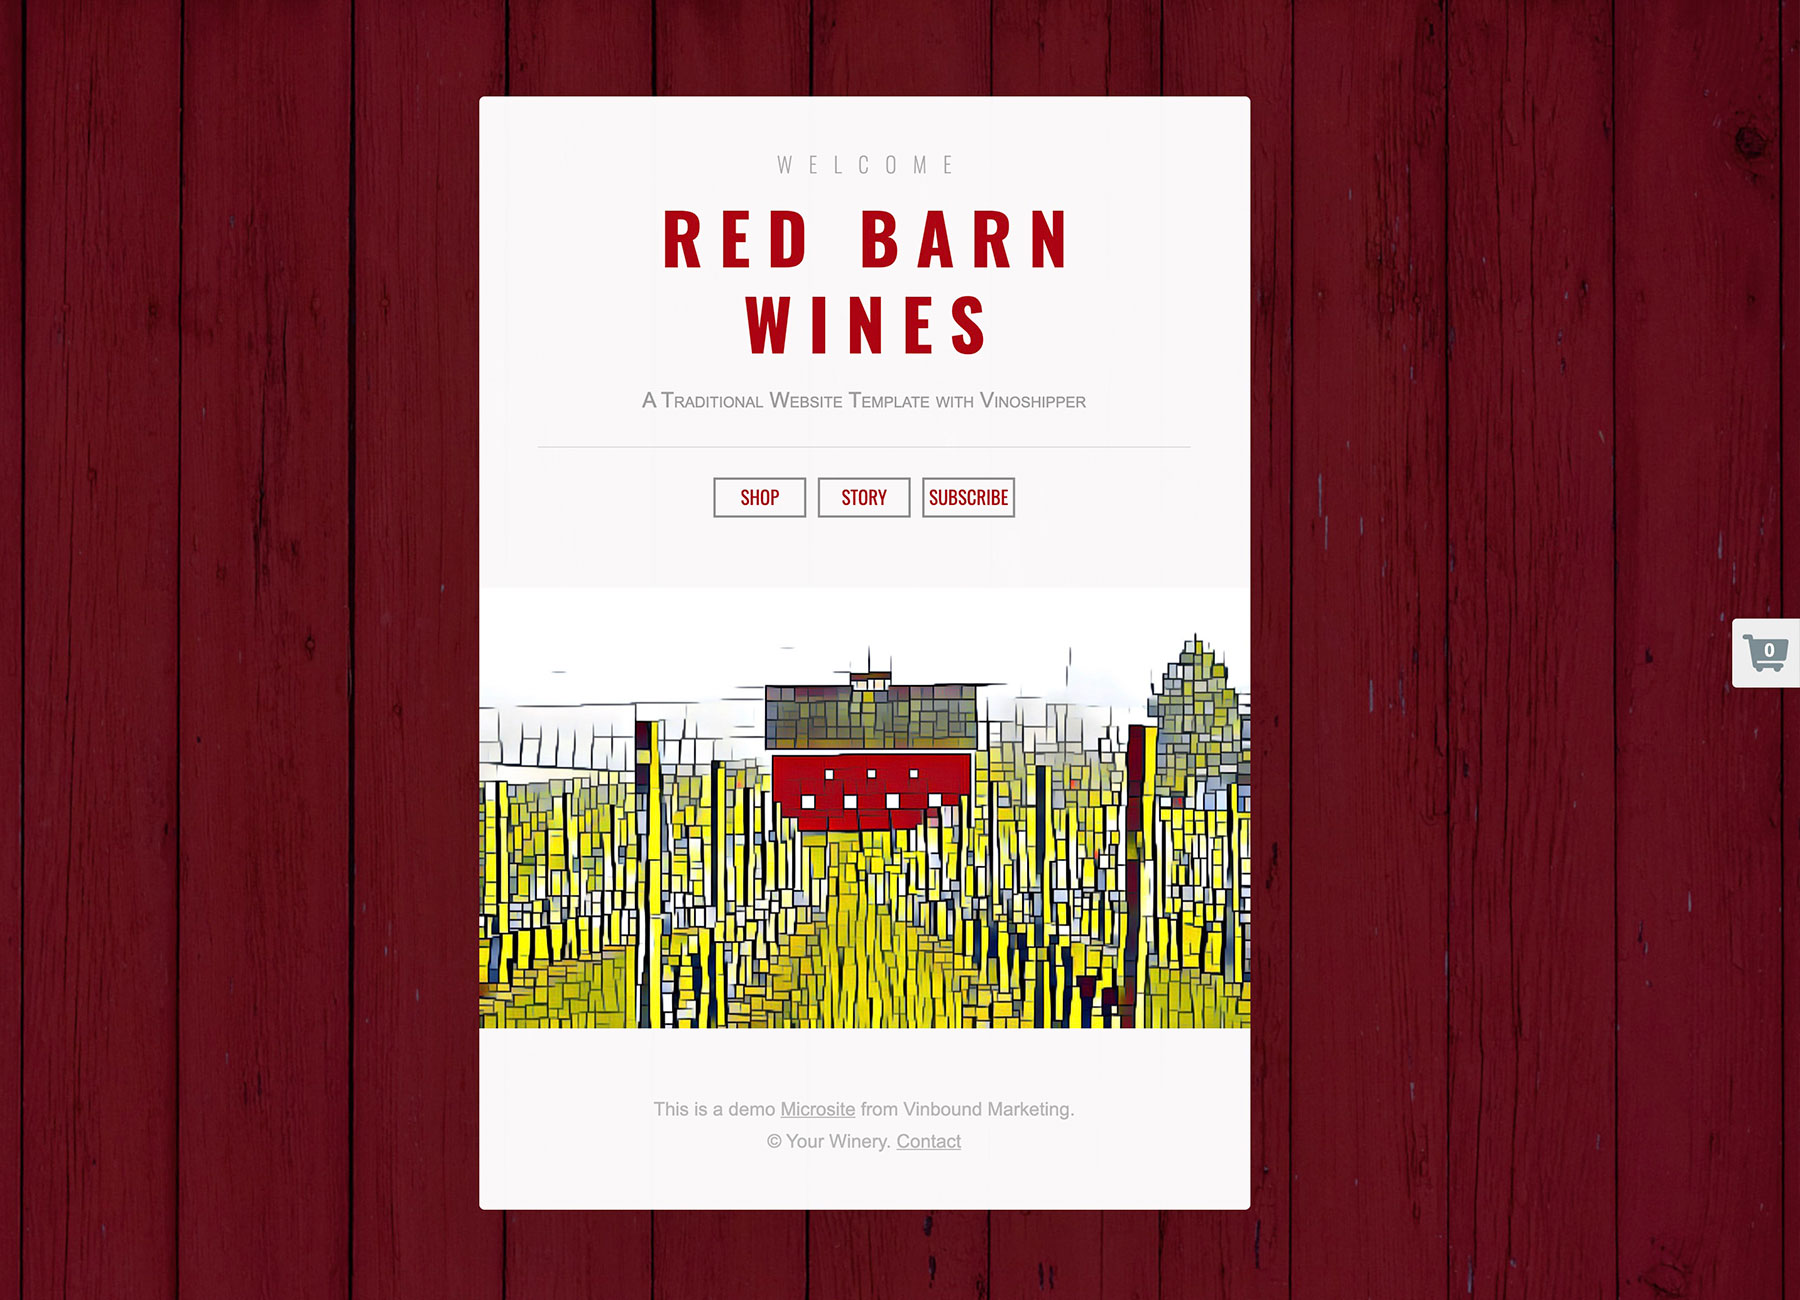 Welcome Red Barn Wines microsite example